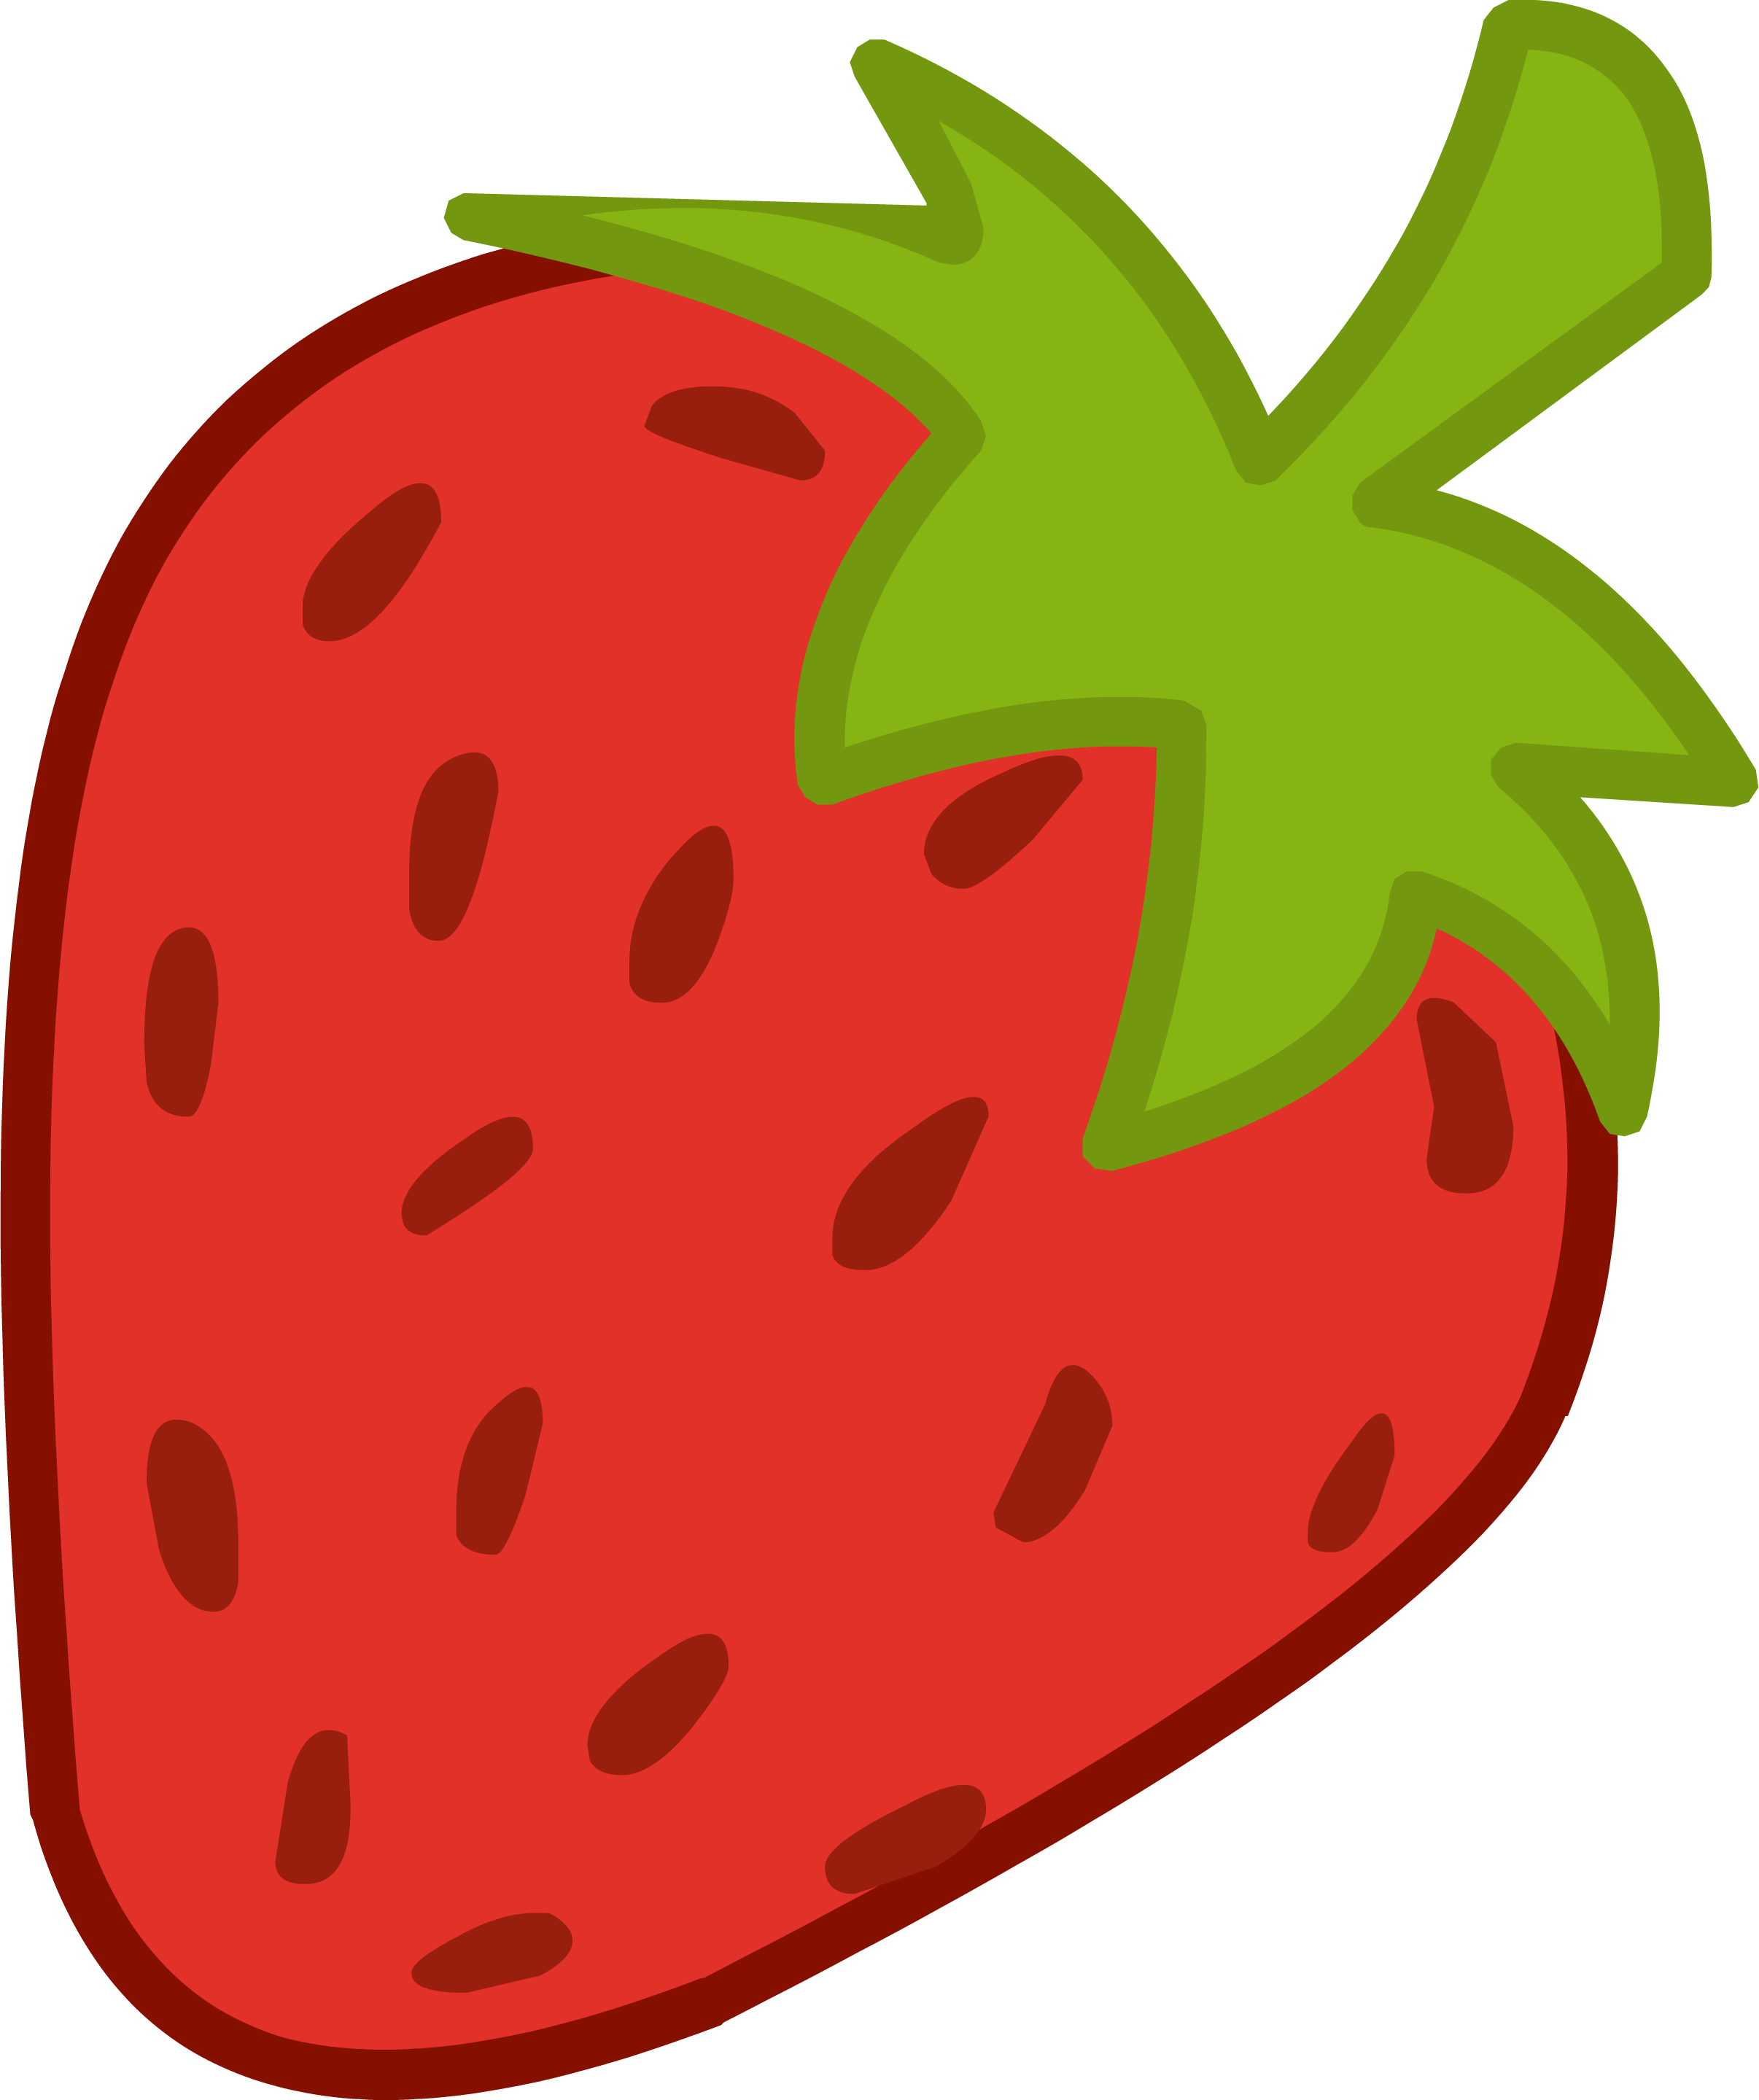 Happy clipart strawberry. Free cliparts download clip